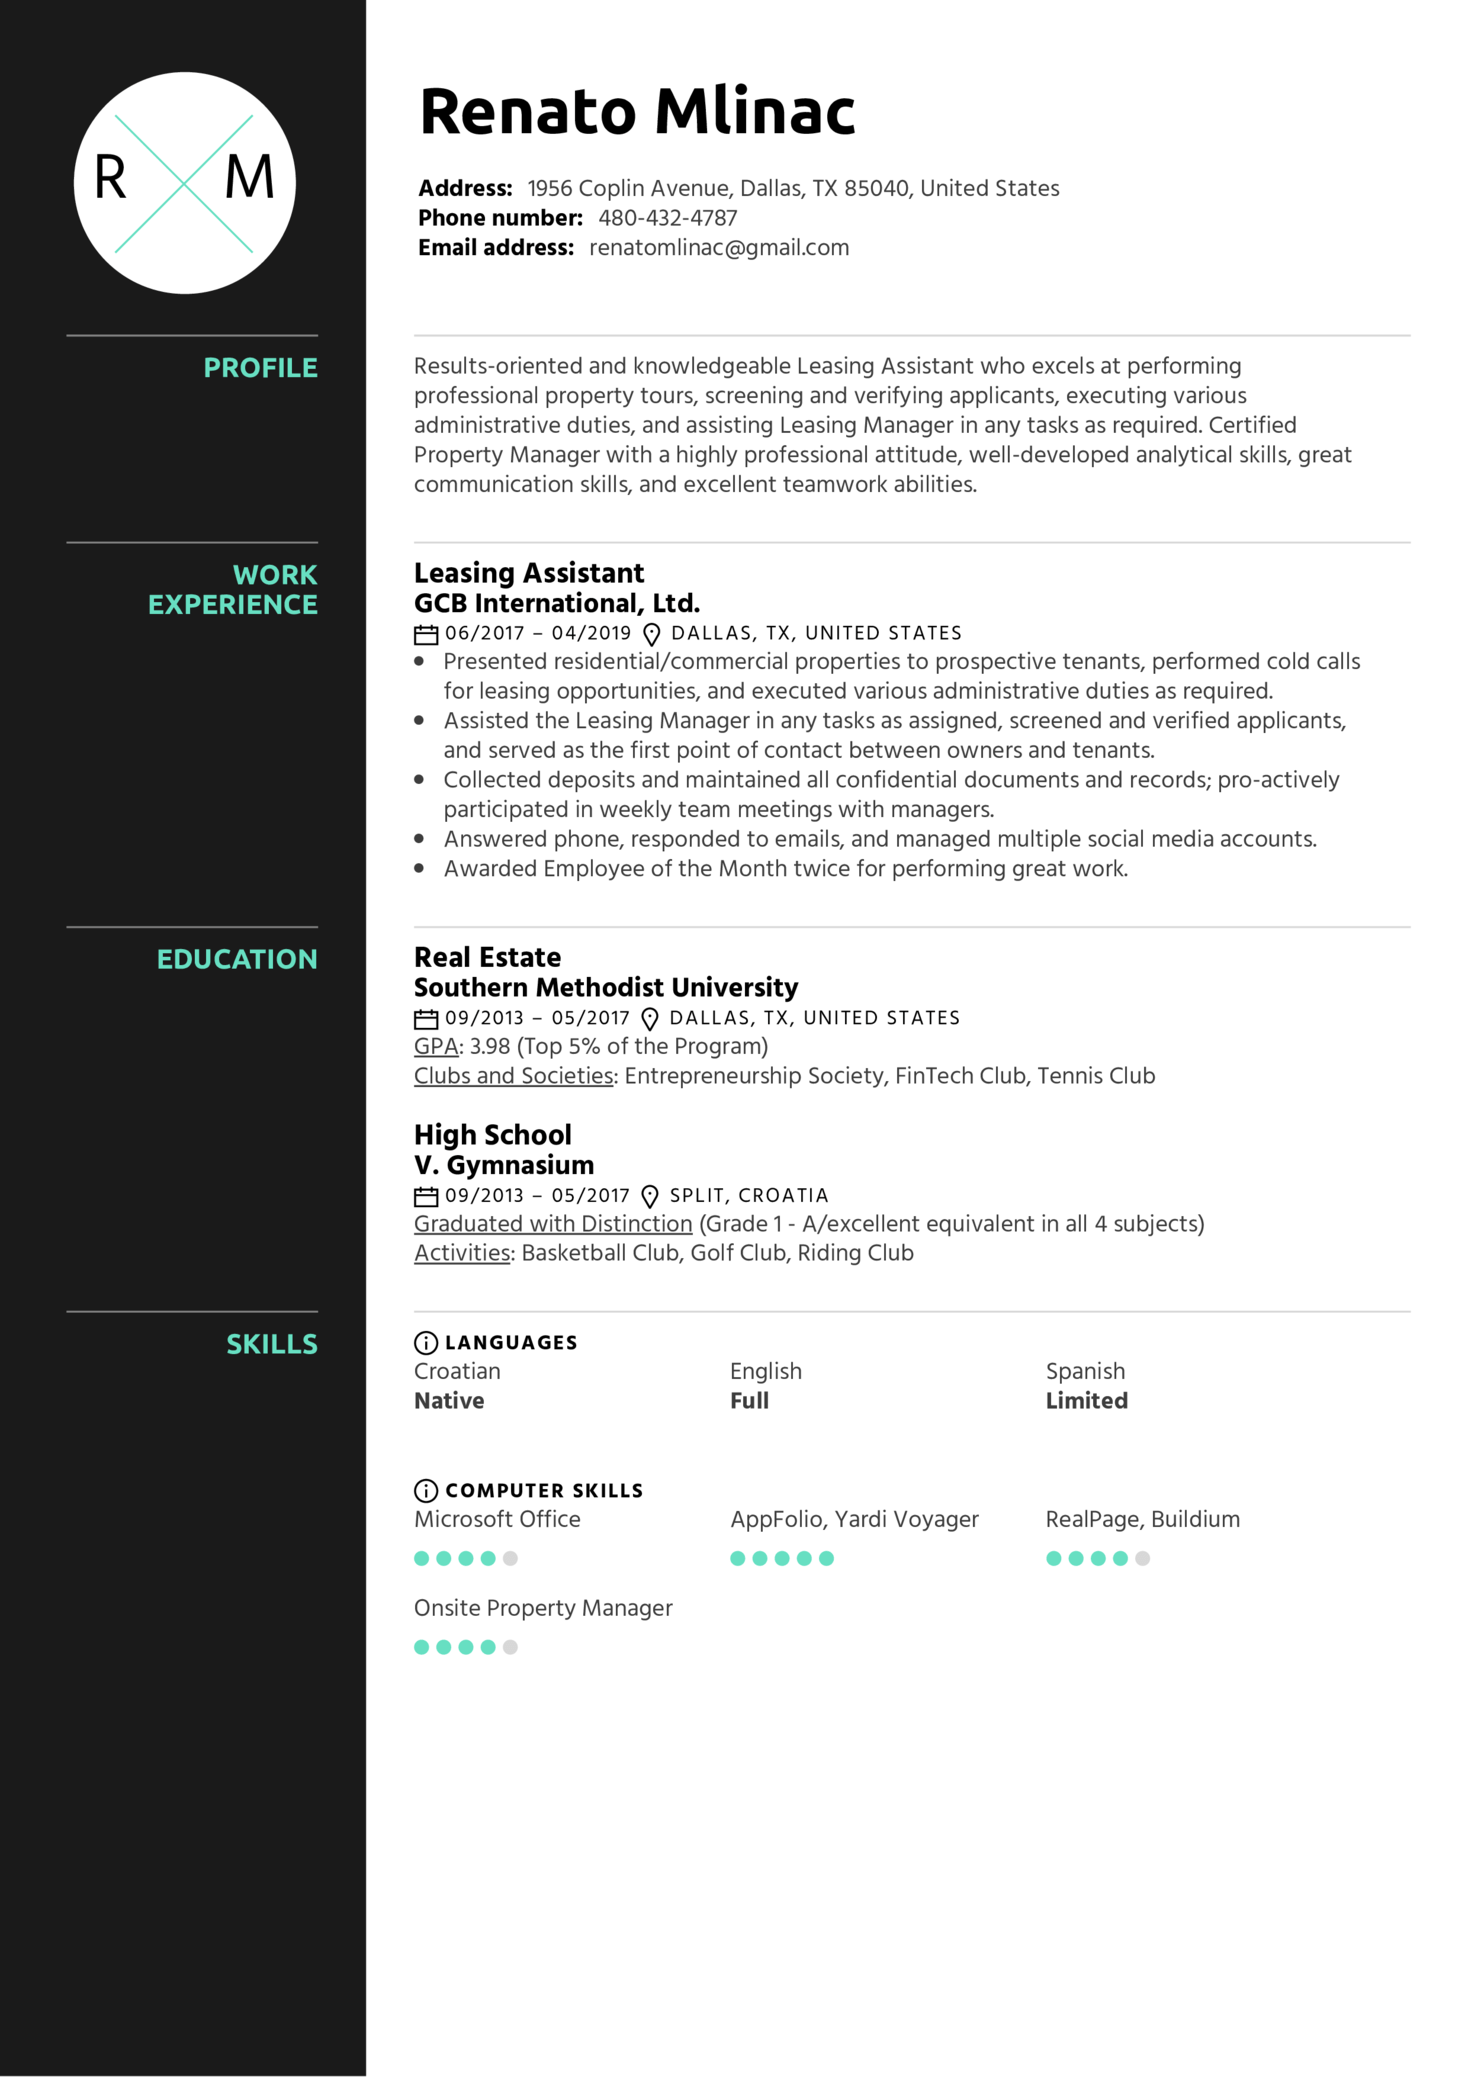 Leasing Assistant Resume Sample (Part 1)